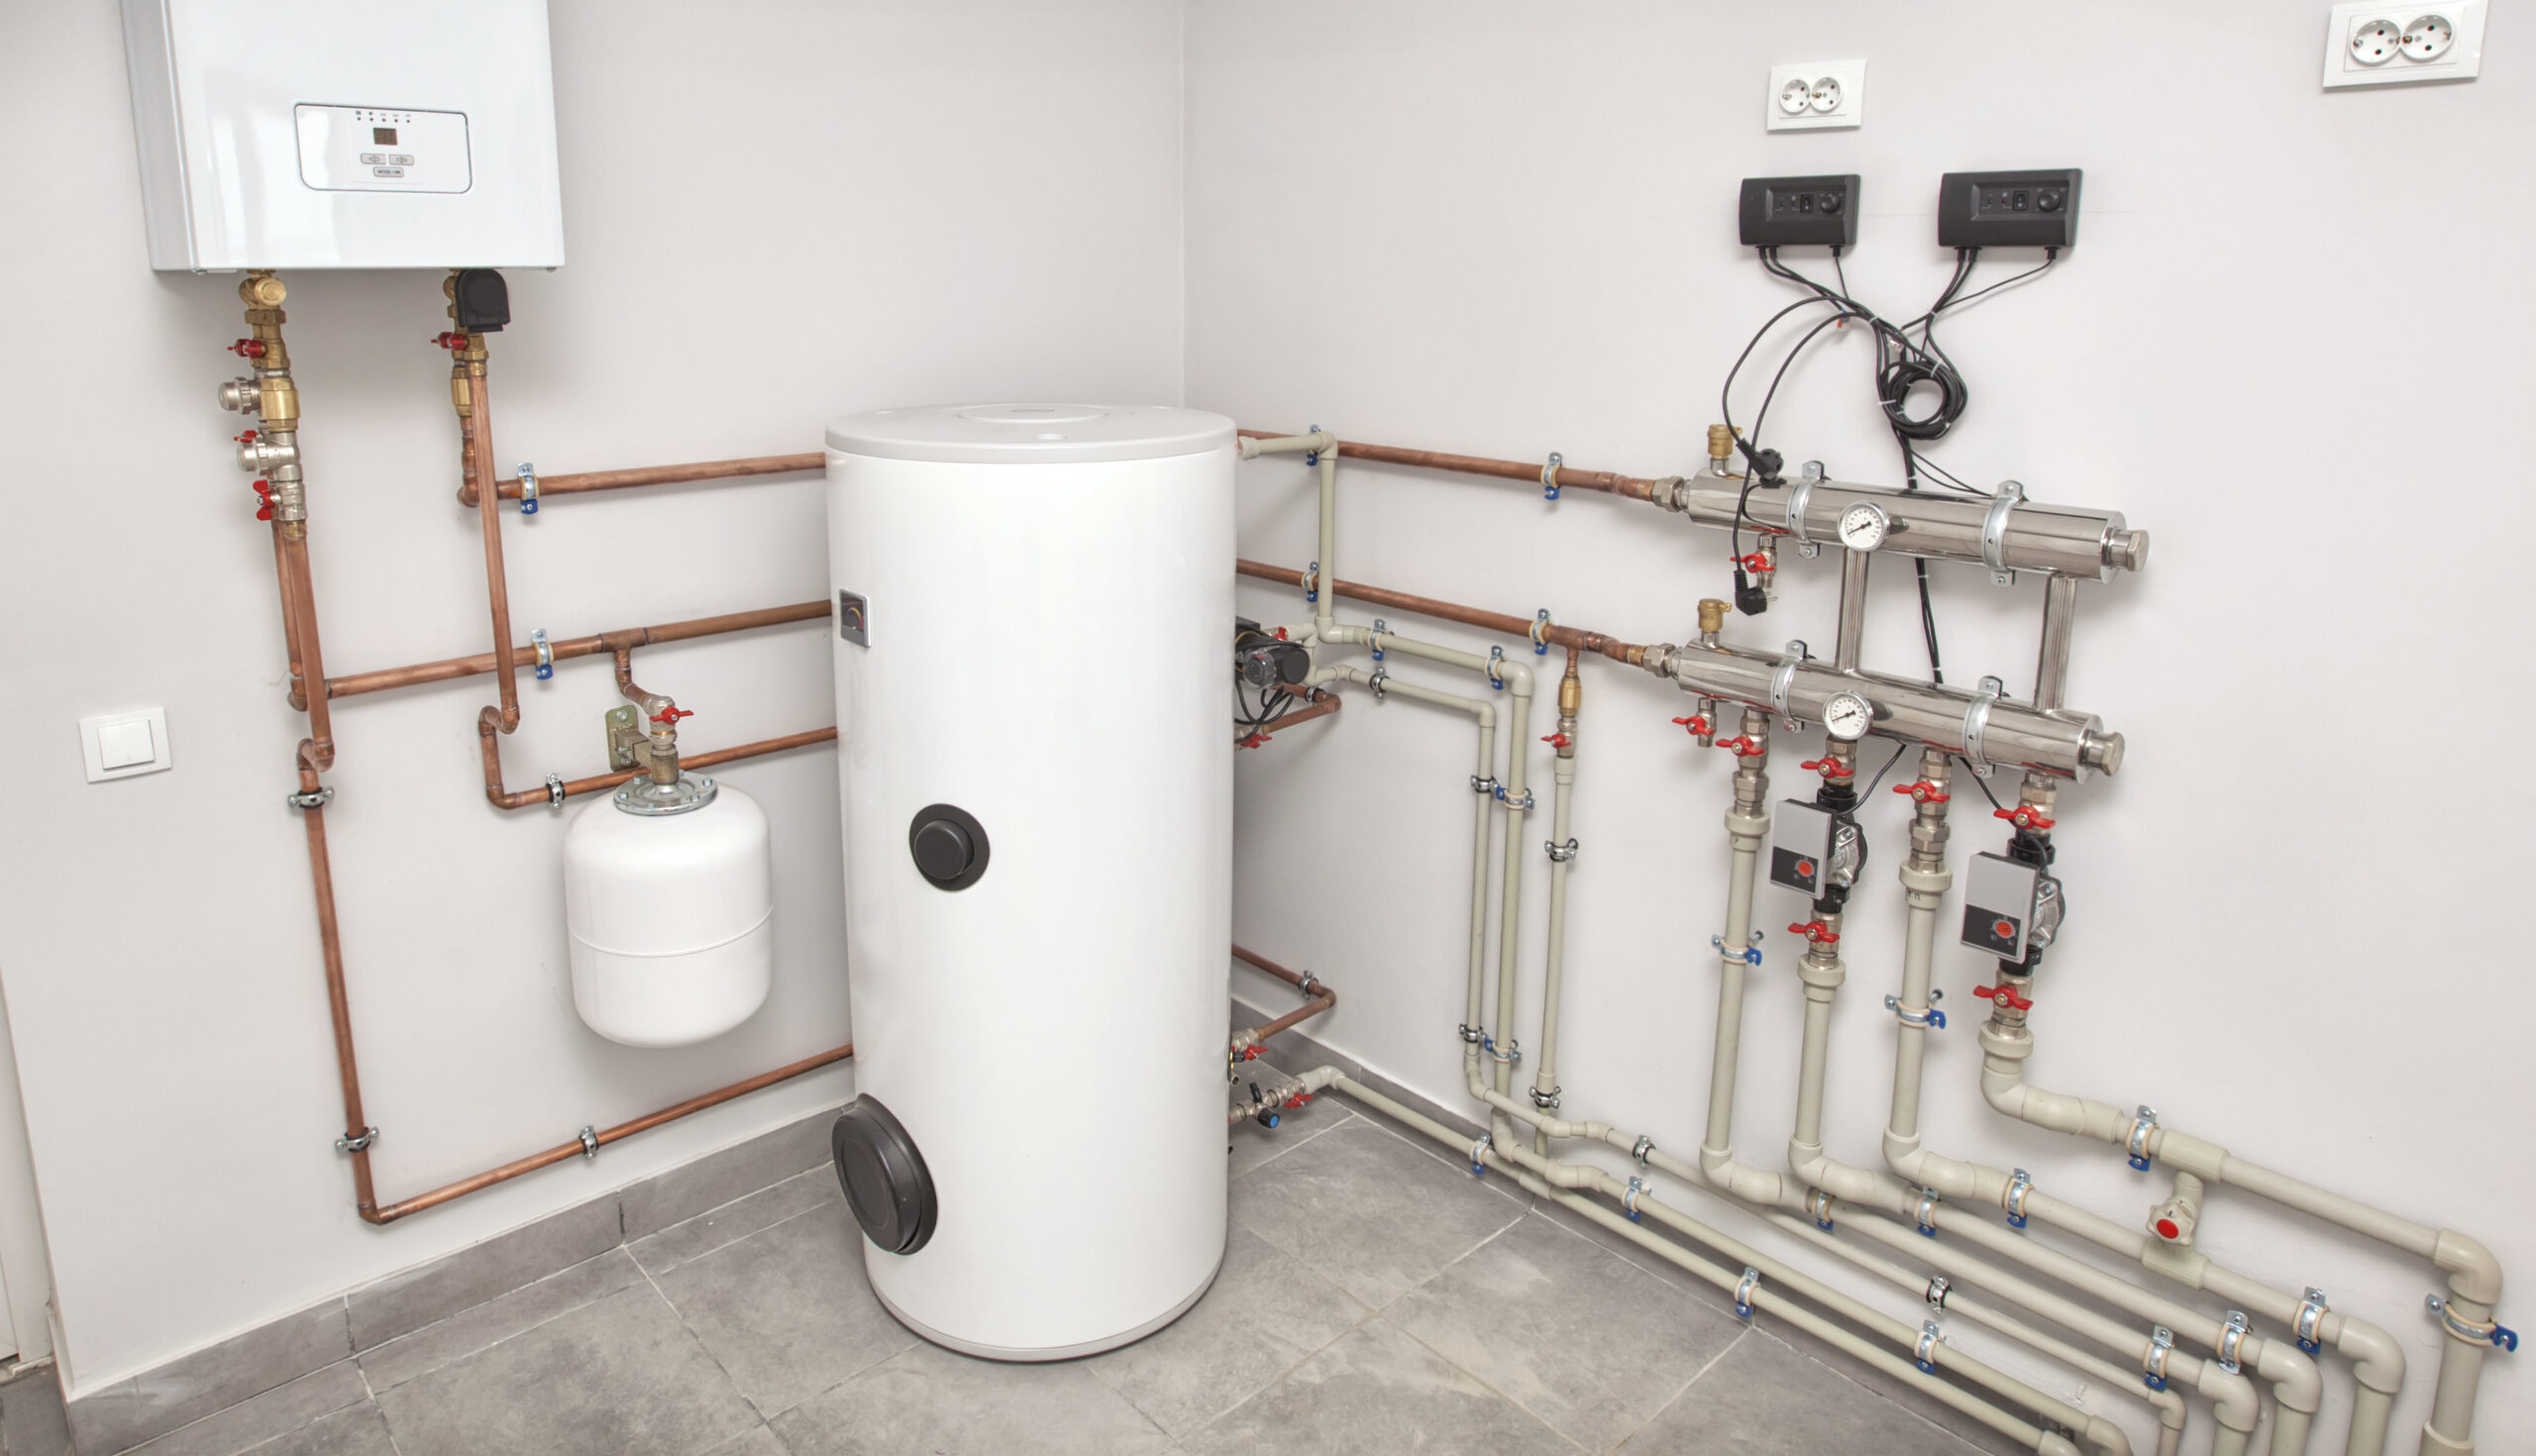 The boiler room with a lot of different equipment as a boiler, heater,pipes, expansion tank and other